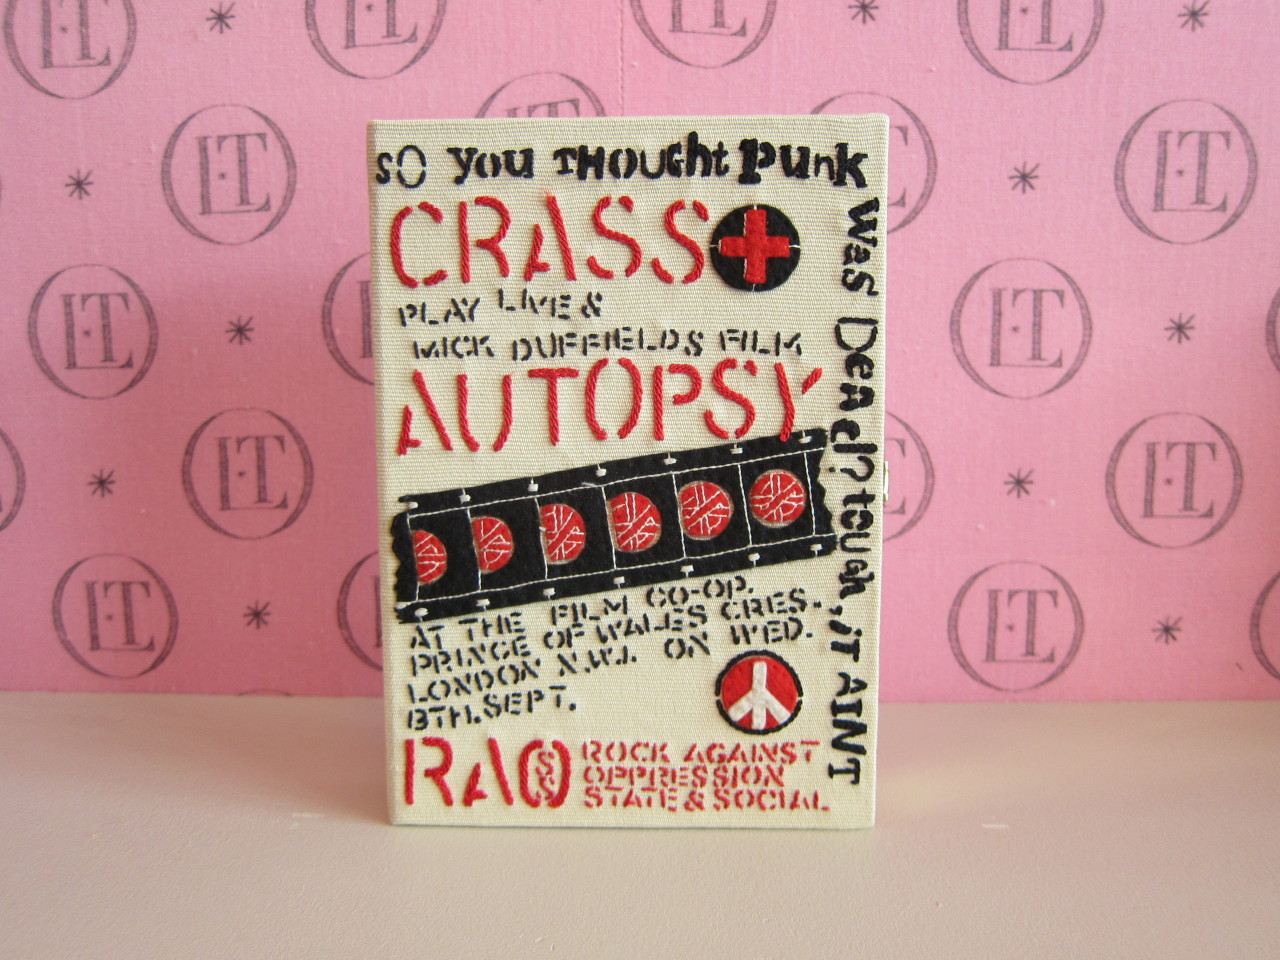 The Crass poster clutch Michelle Williams wore to the Met Ball last night.